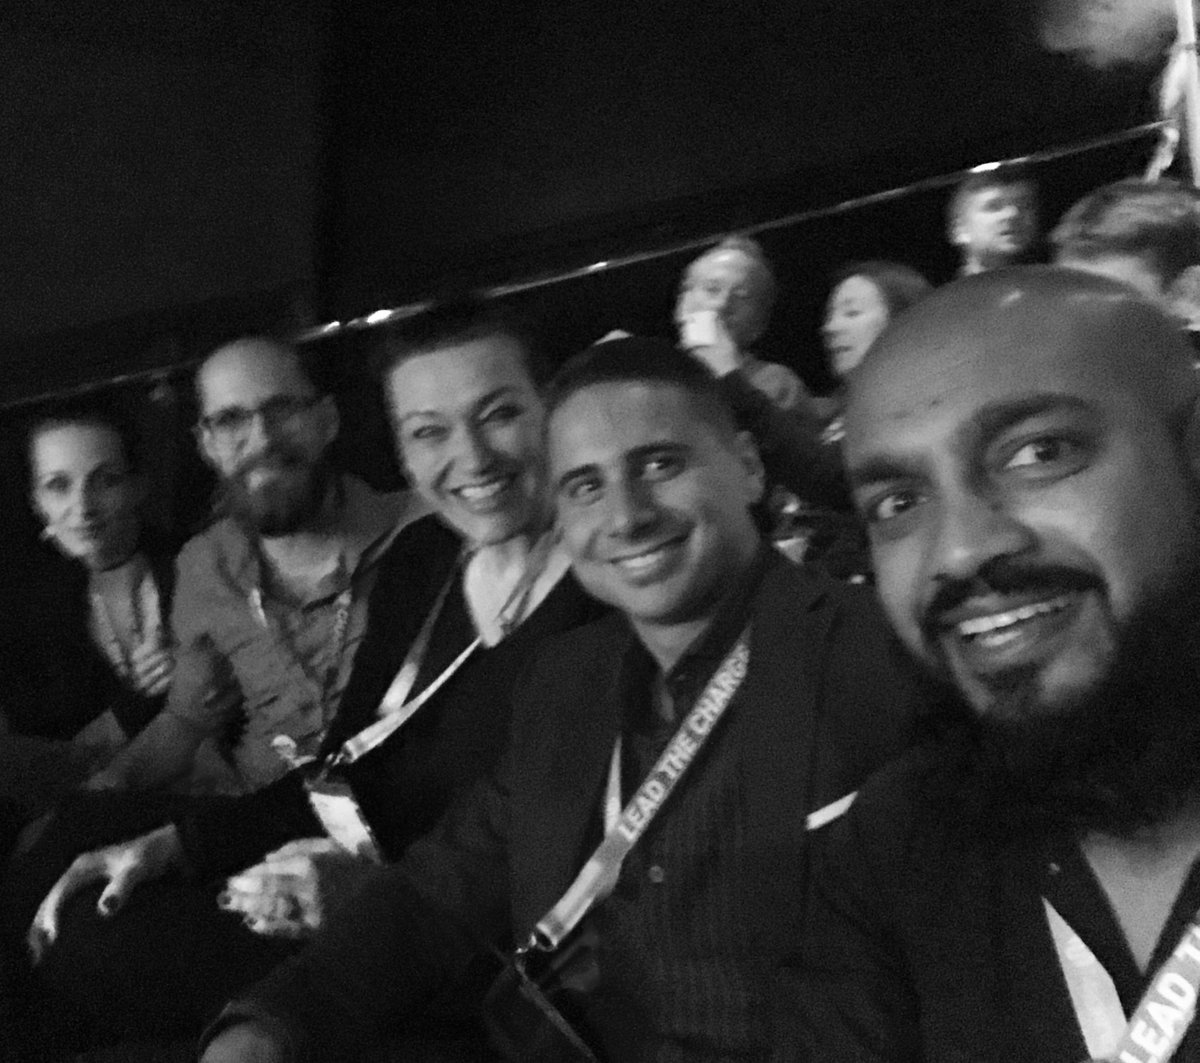 _Talesh: Ready for this keynote at #MagentoImagine! https://t.co/wsuCFnXwPr